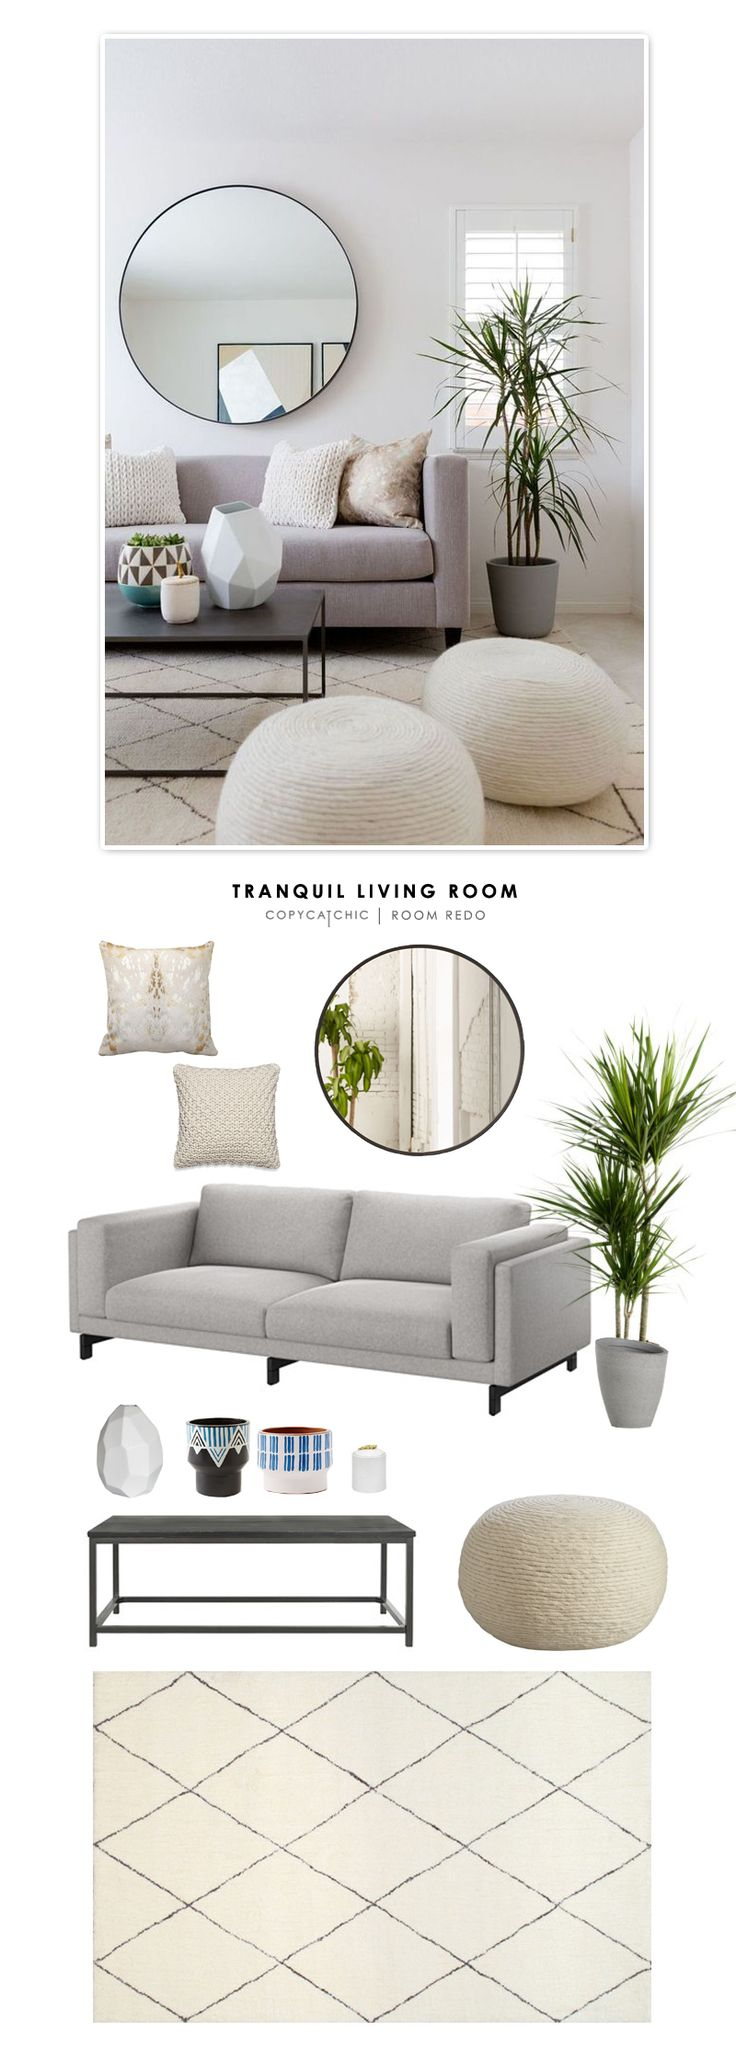 Copy Cat Chic Room Redo | Tranquil Living Room